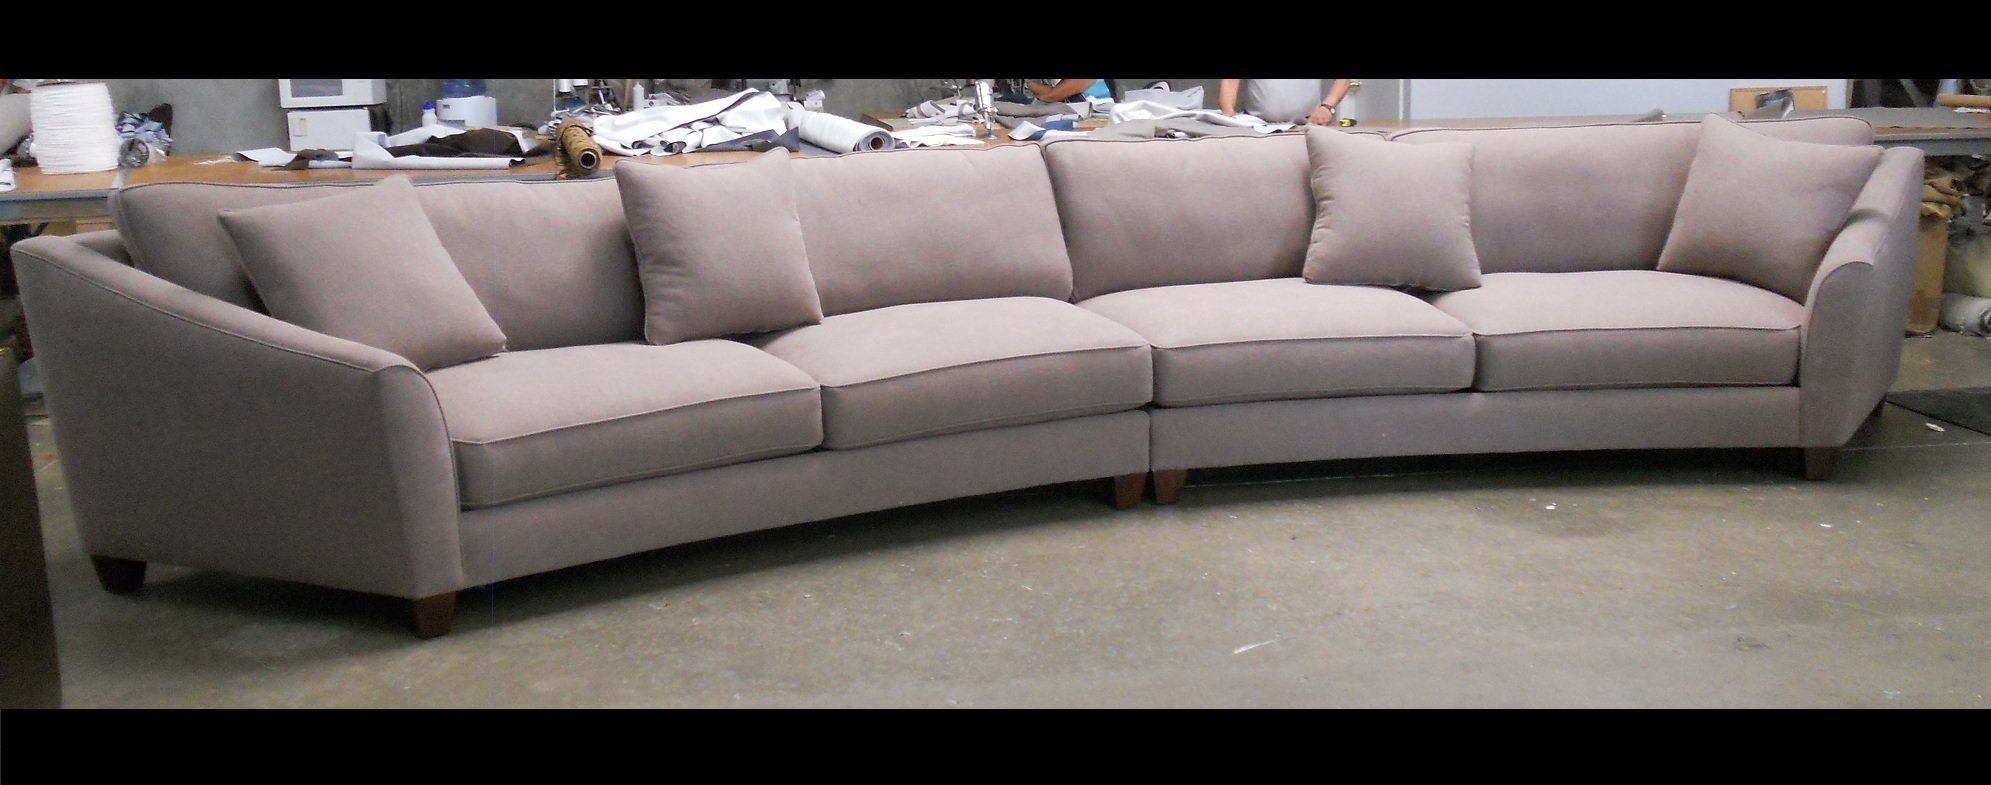 Curved Sectional Sofa Set Rich Comfortable Upholstered Fabric With Contemporary Curved Sofas (View 8 of 15)